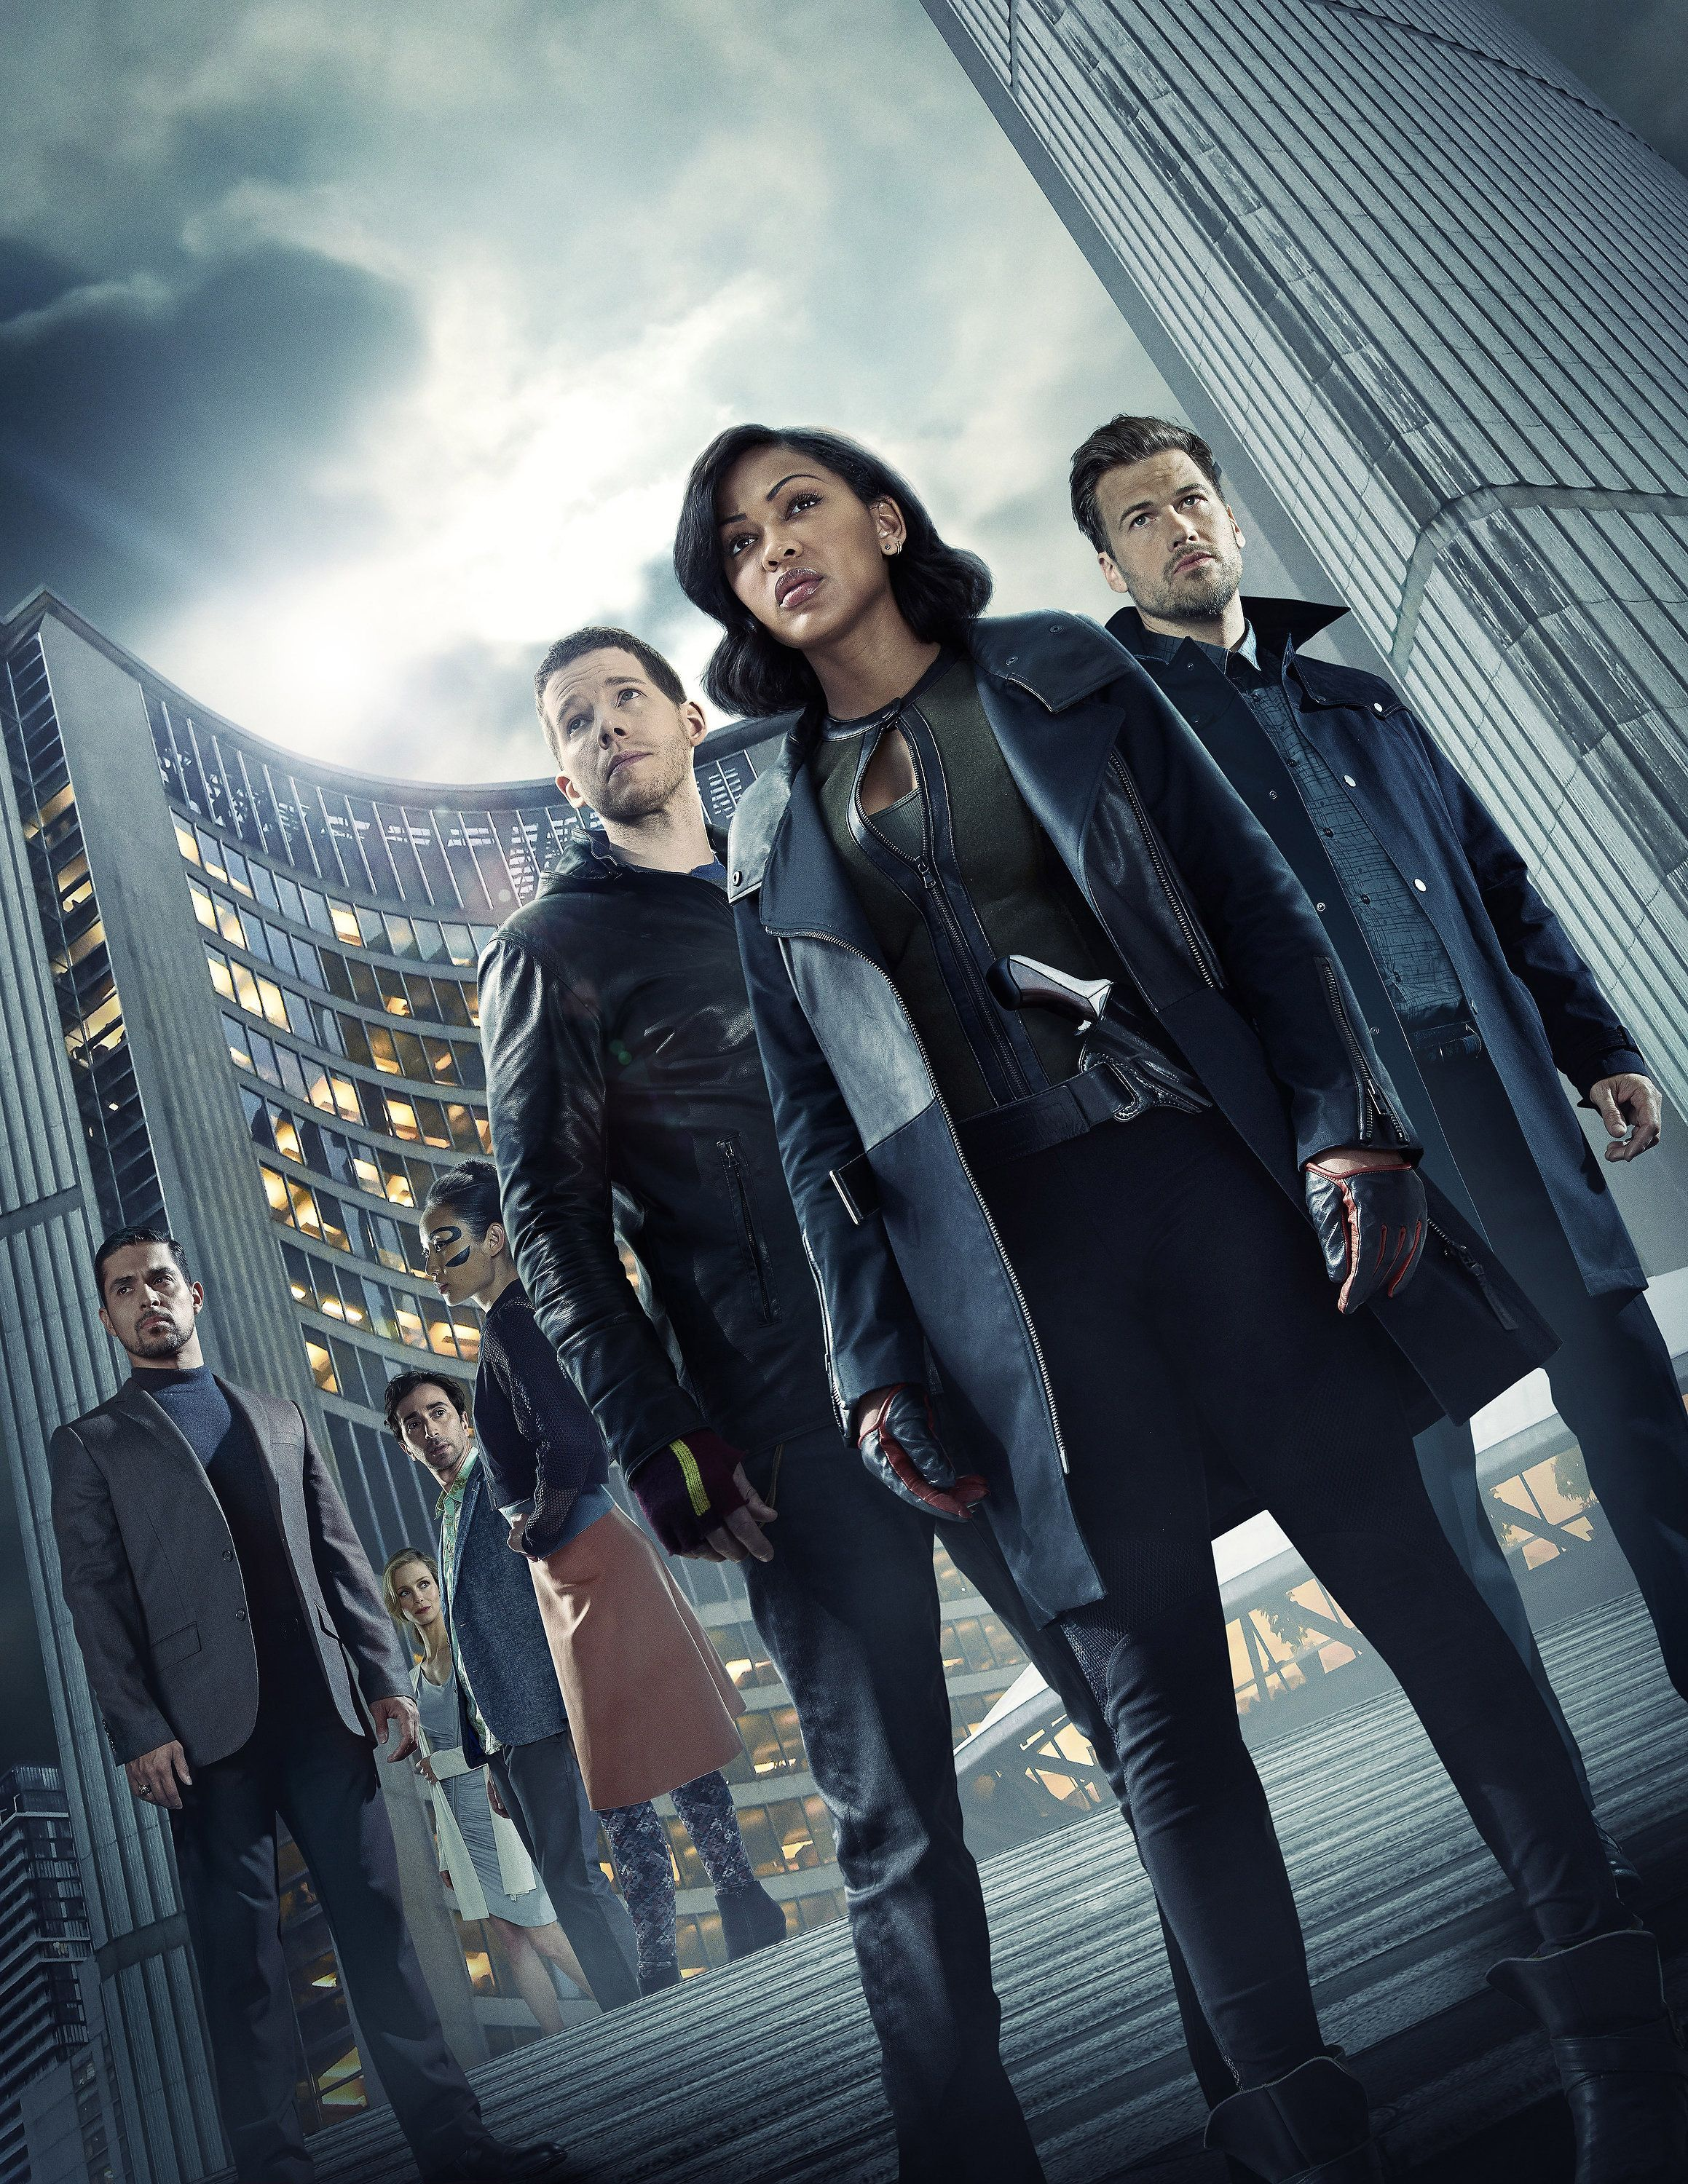 MINORITY REPORT: L-R: Wilmer Valderrama as Will Blake, Laura Regan as Agatha, Daniel London as Wally, Li Jun Li as Akeela, Stark Sands as Dash, Megan Good as Det. Lara Vega and Nick Zano as Arthur. (Photo by FOX via Getty Images)